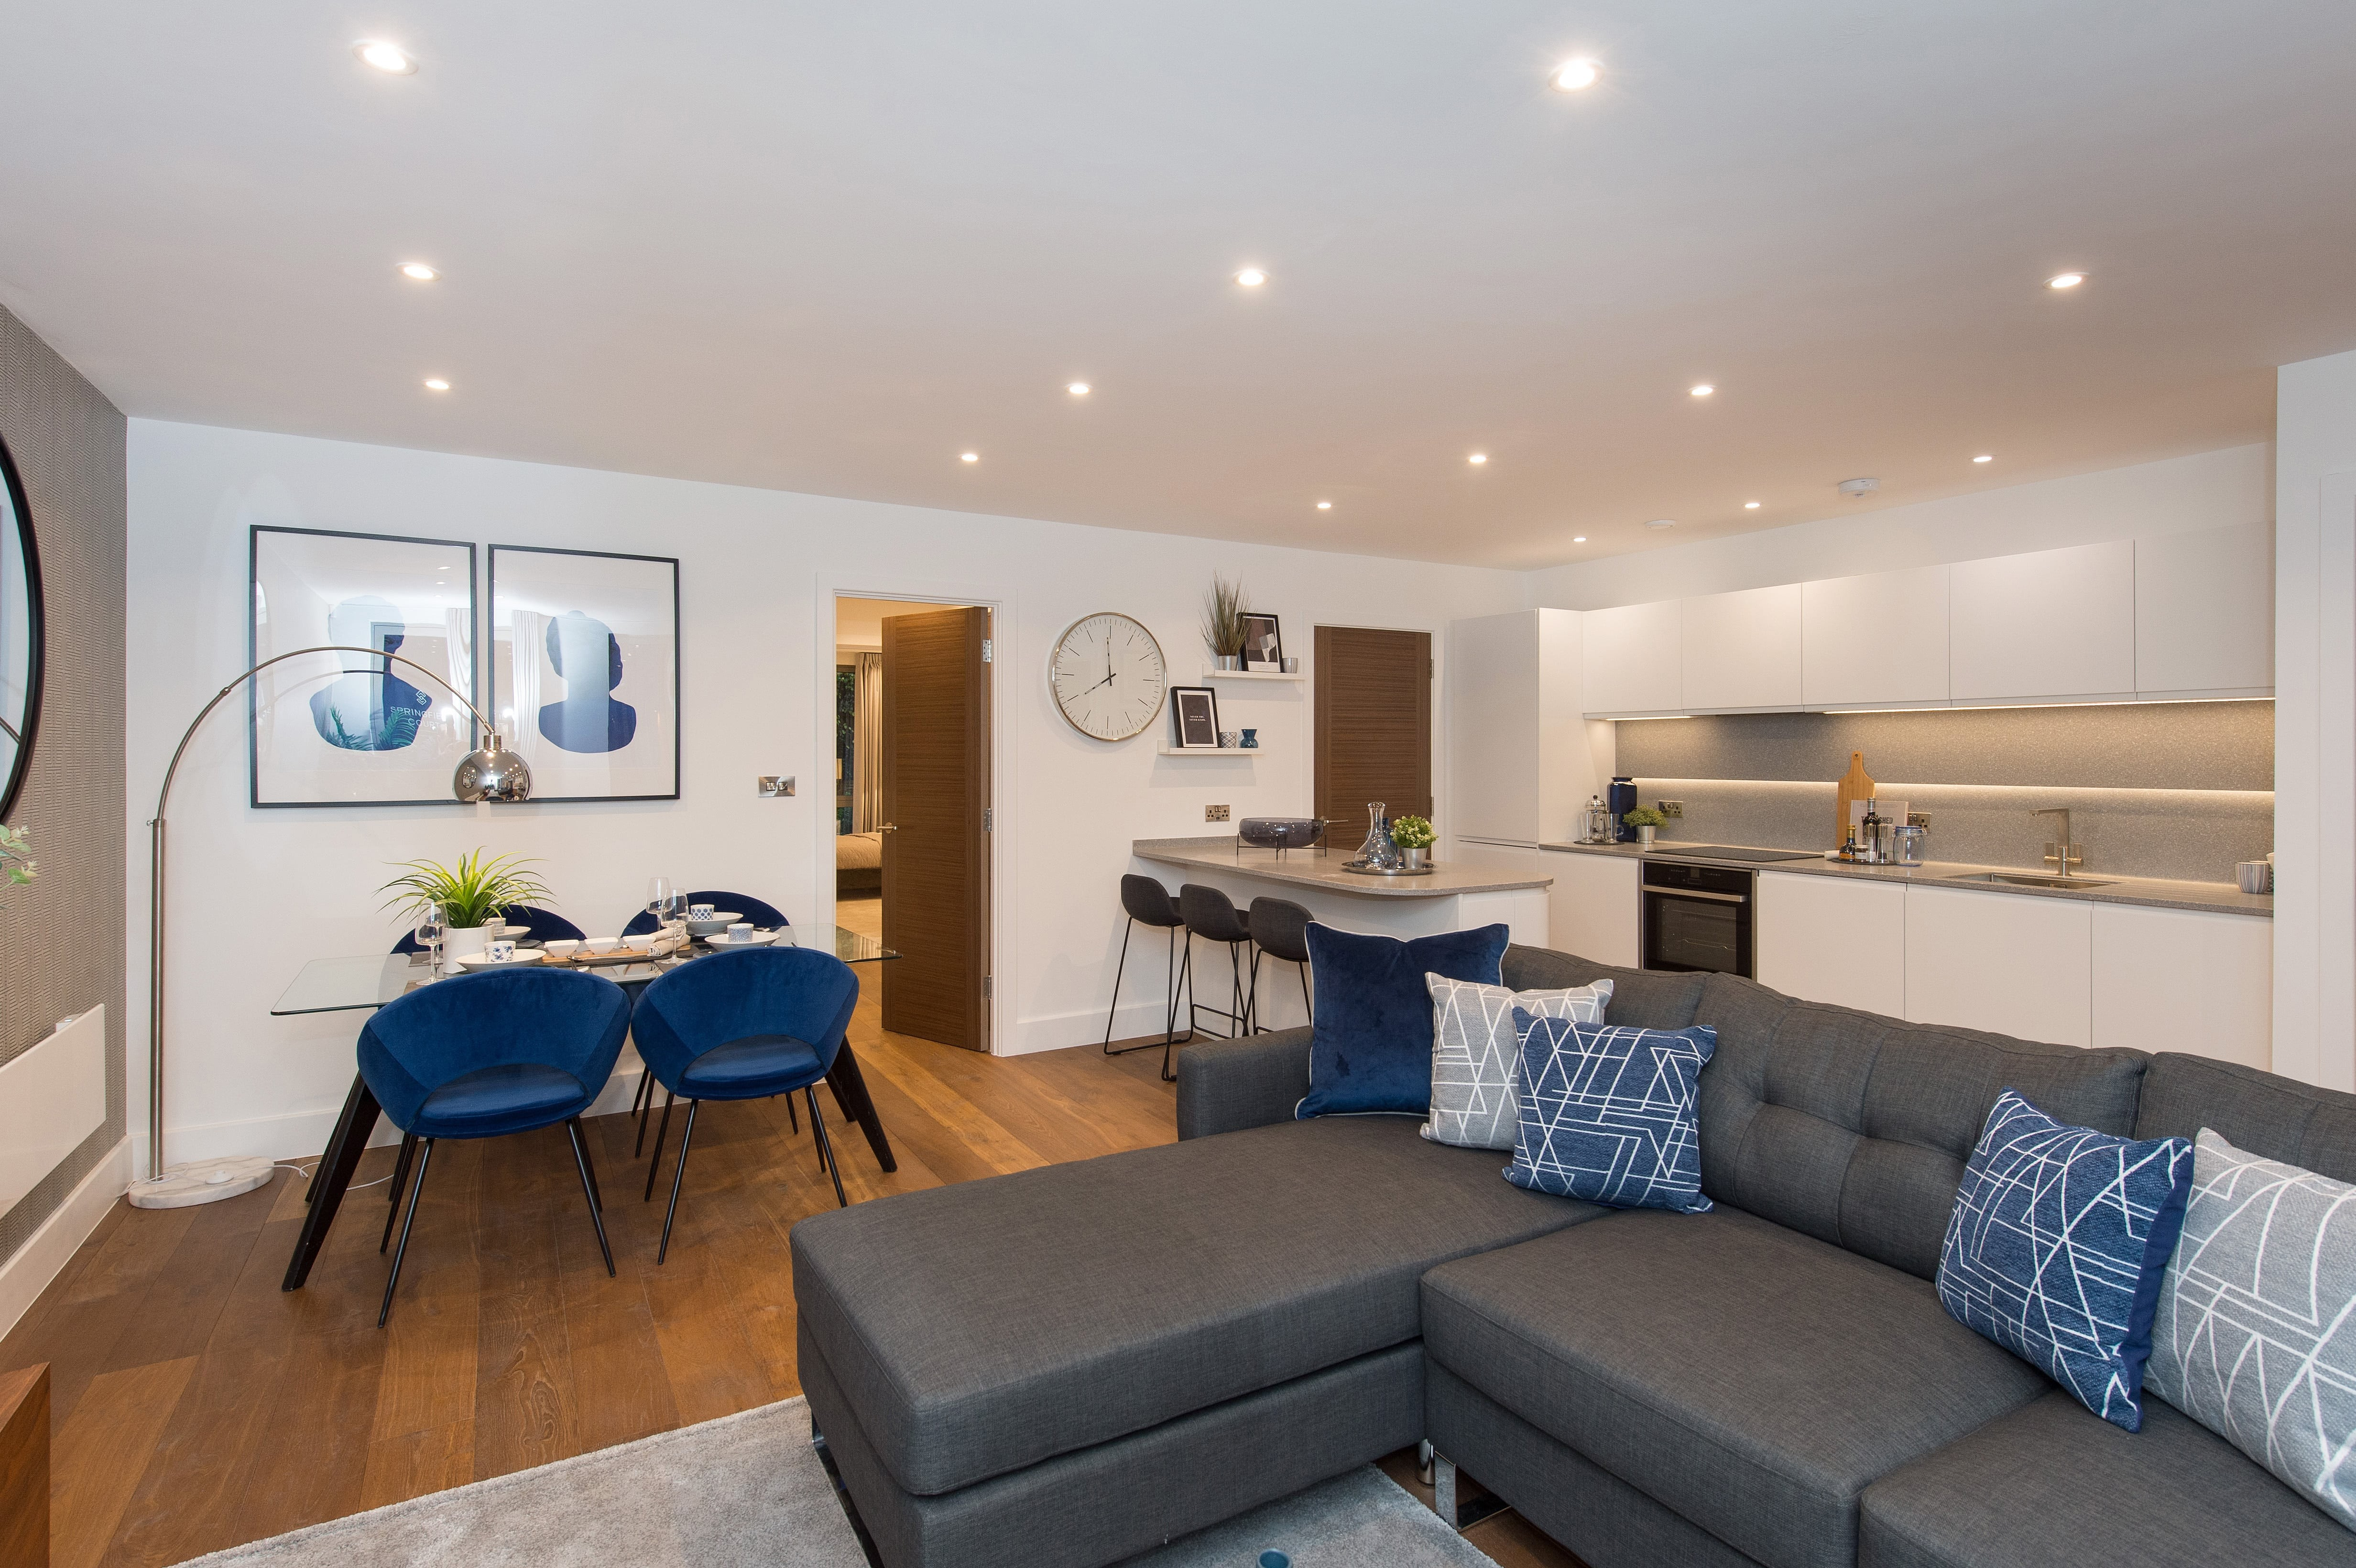 Springfield Court Apartments For Sale In Harrogate Town Centre